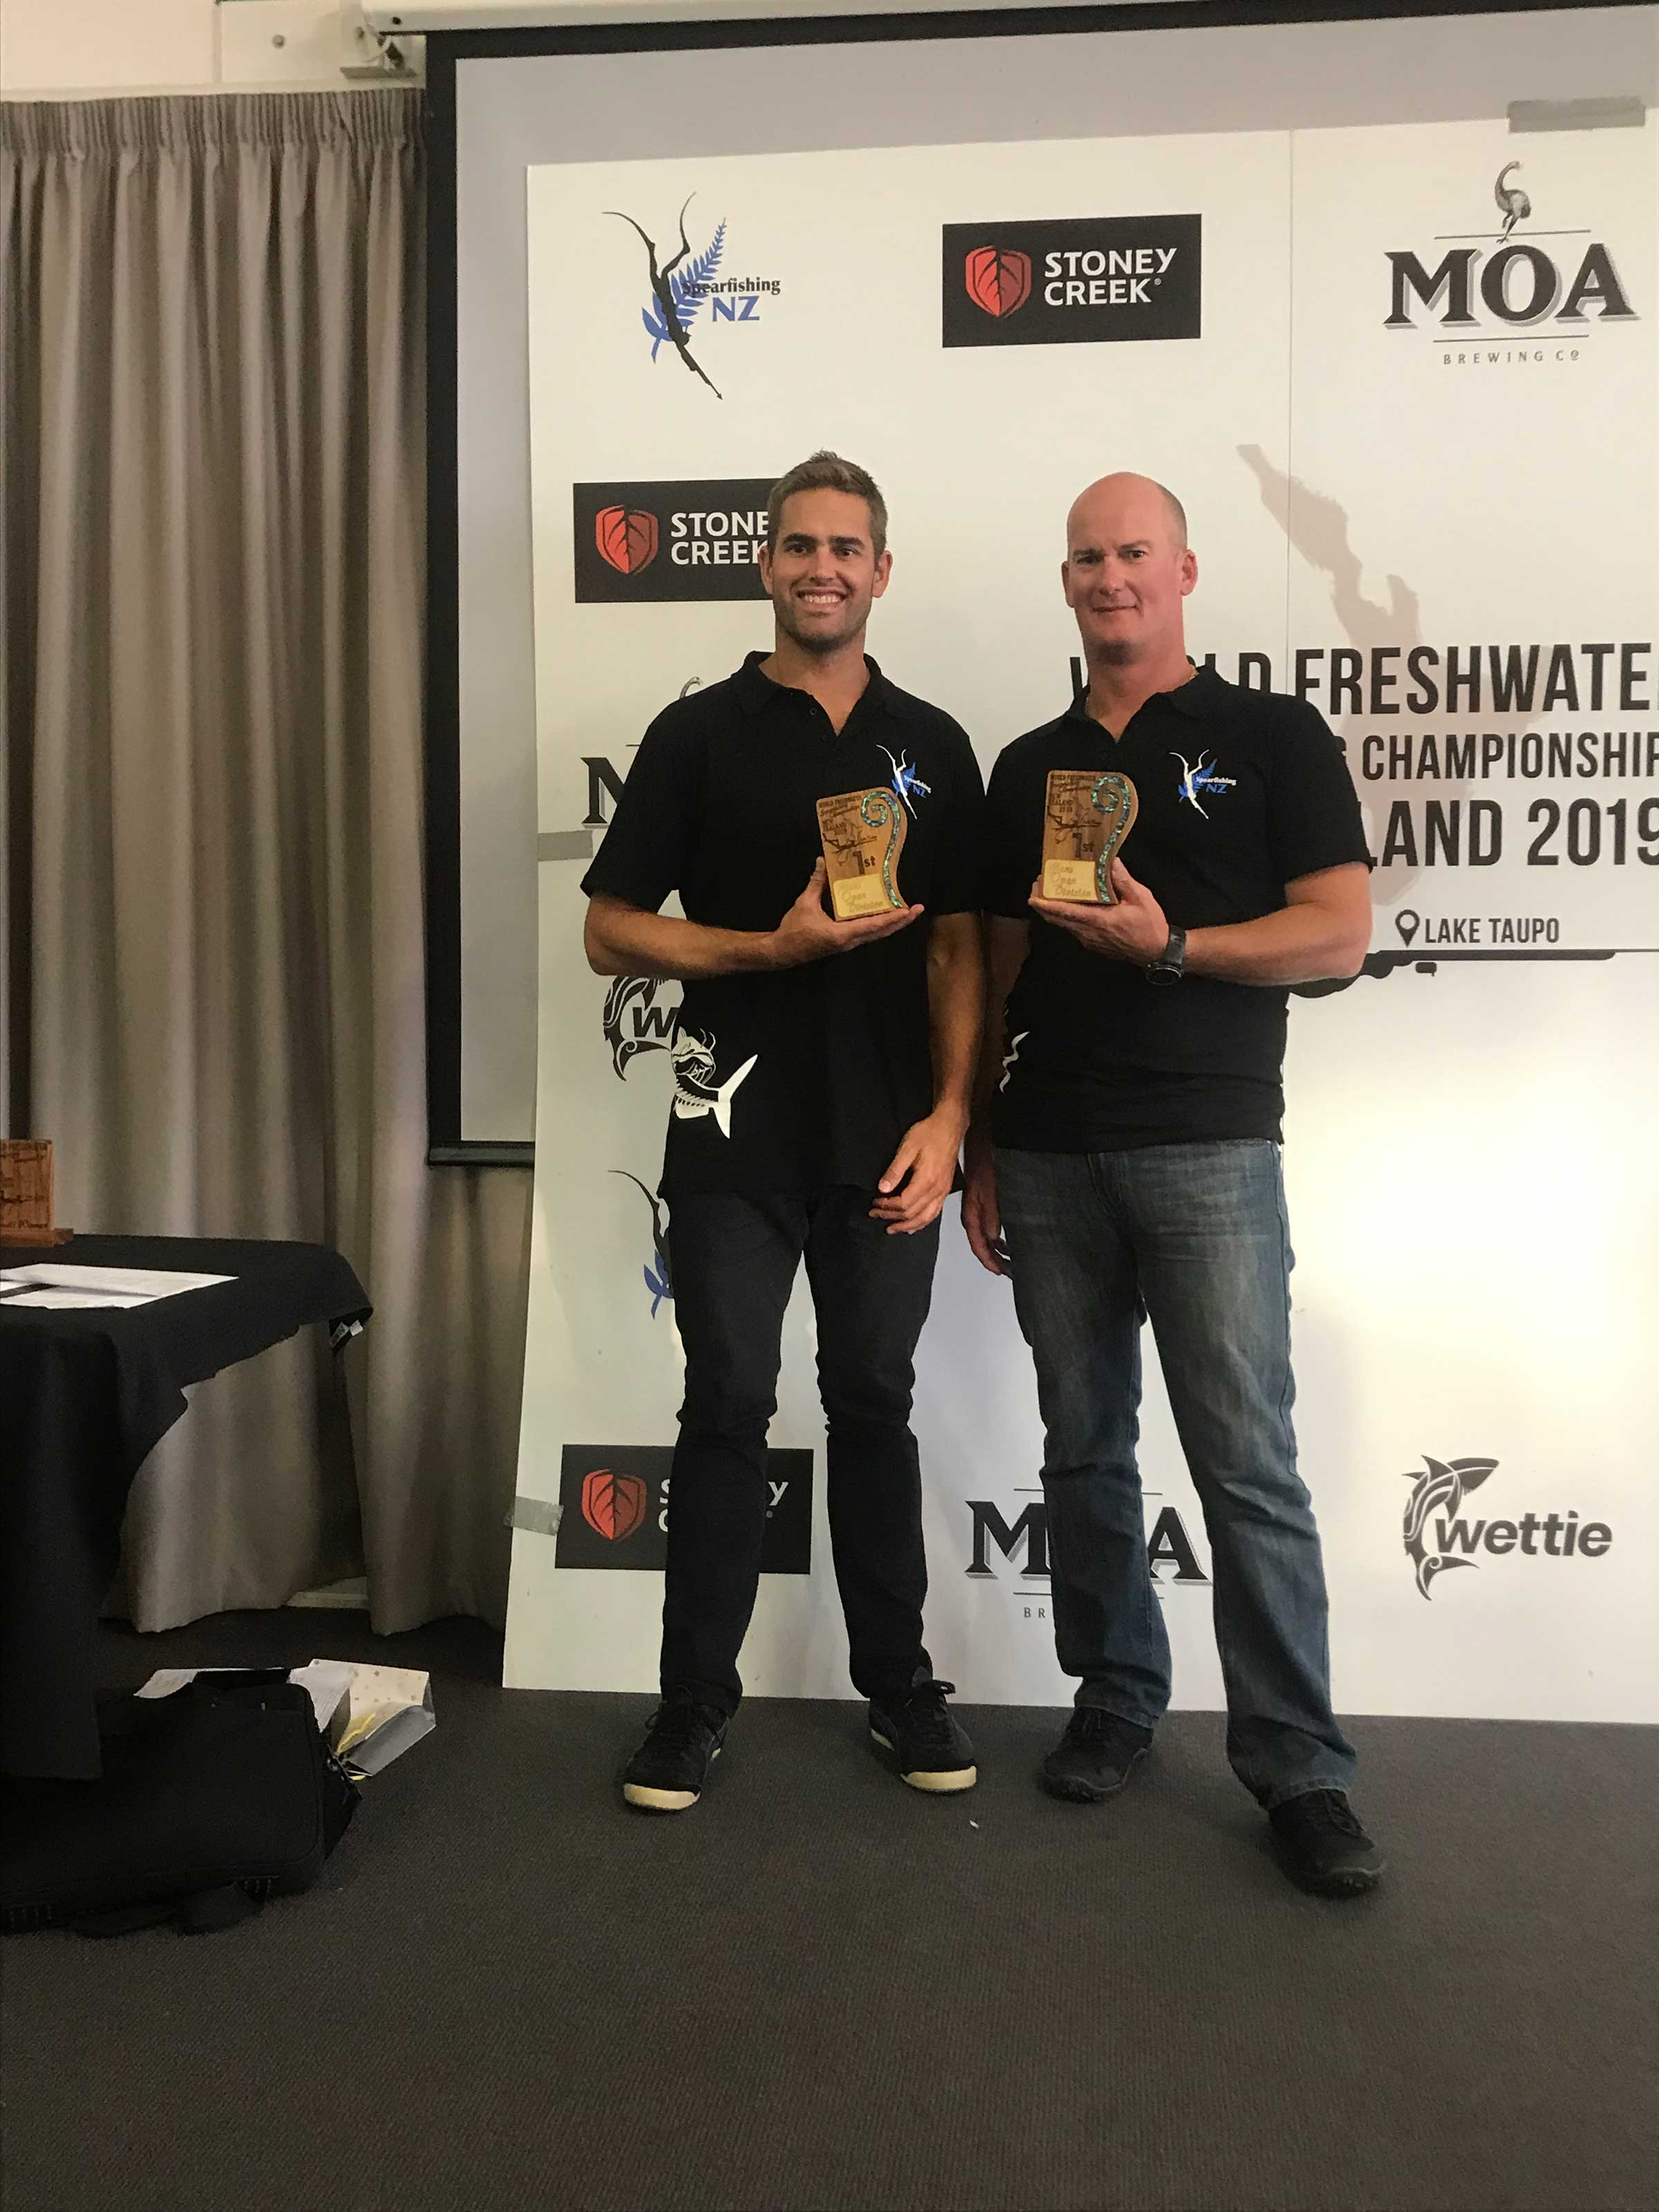 Moss Burnmester and Nat Davey: Recent Winners of World Freshwater Champs